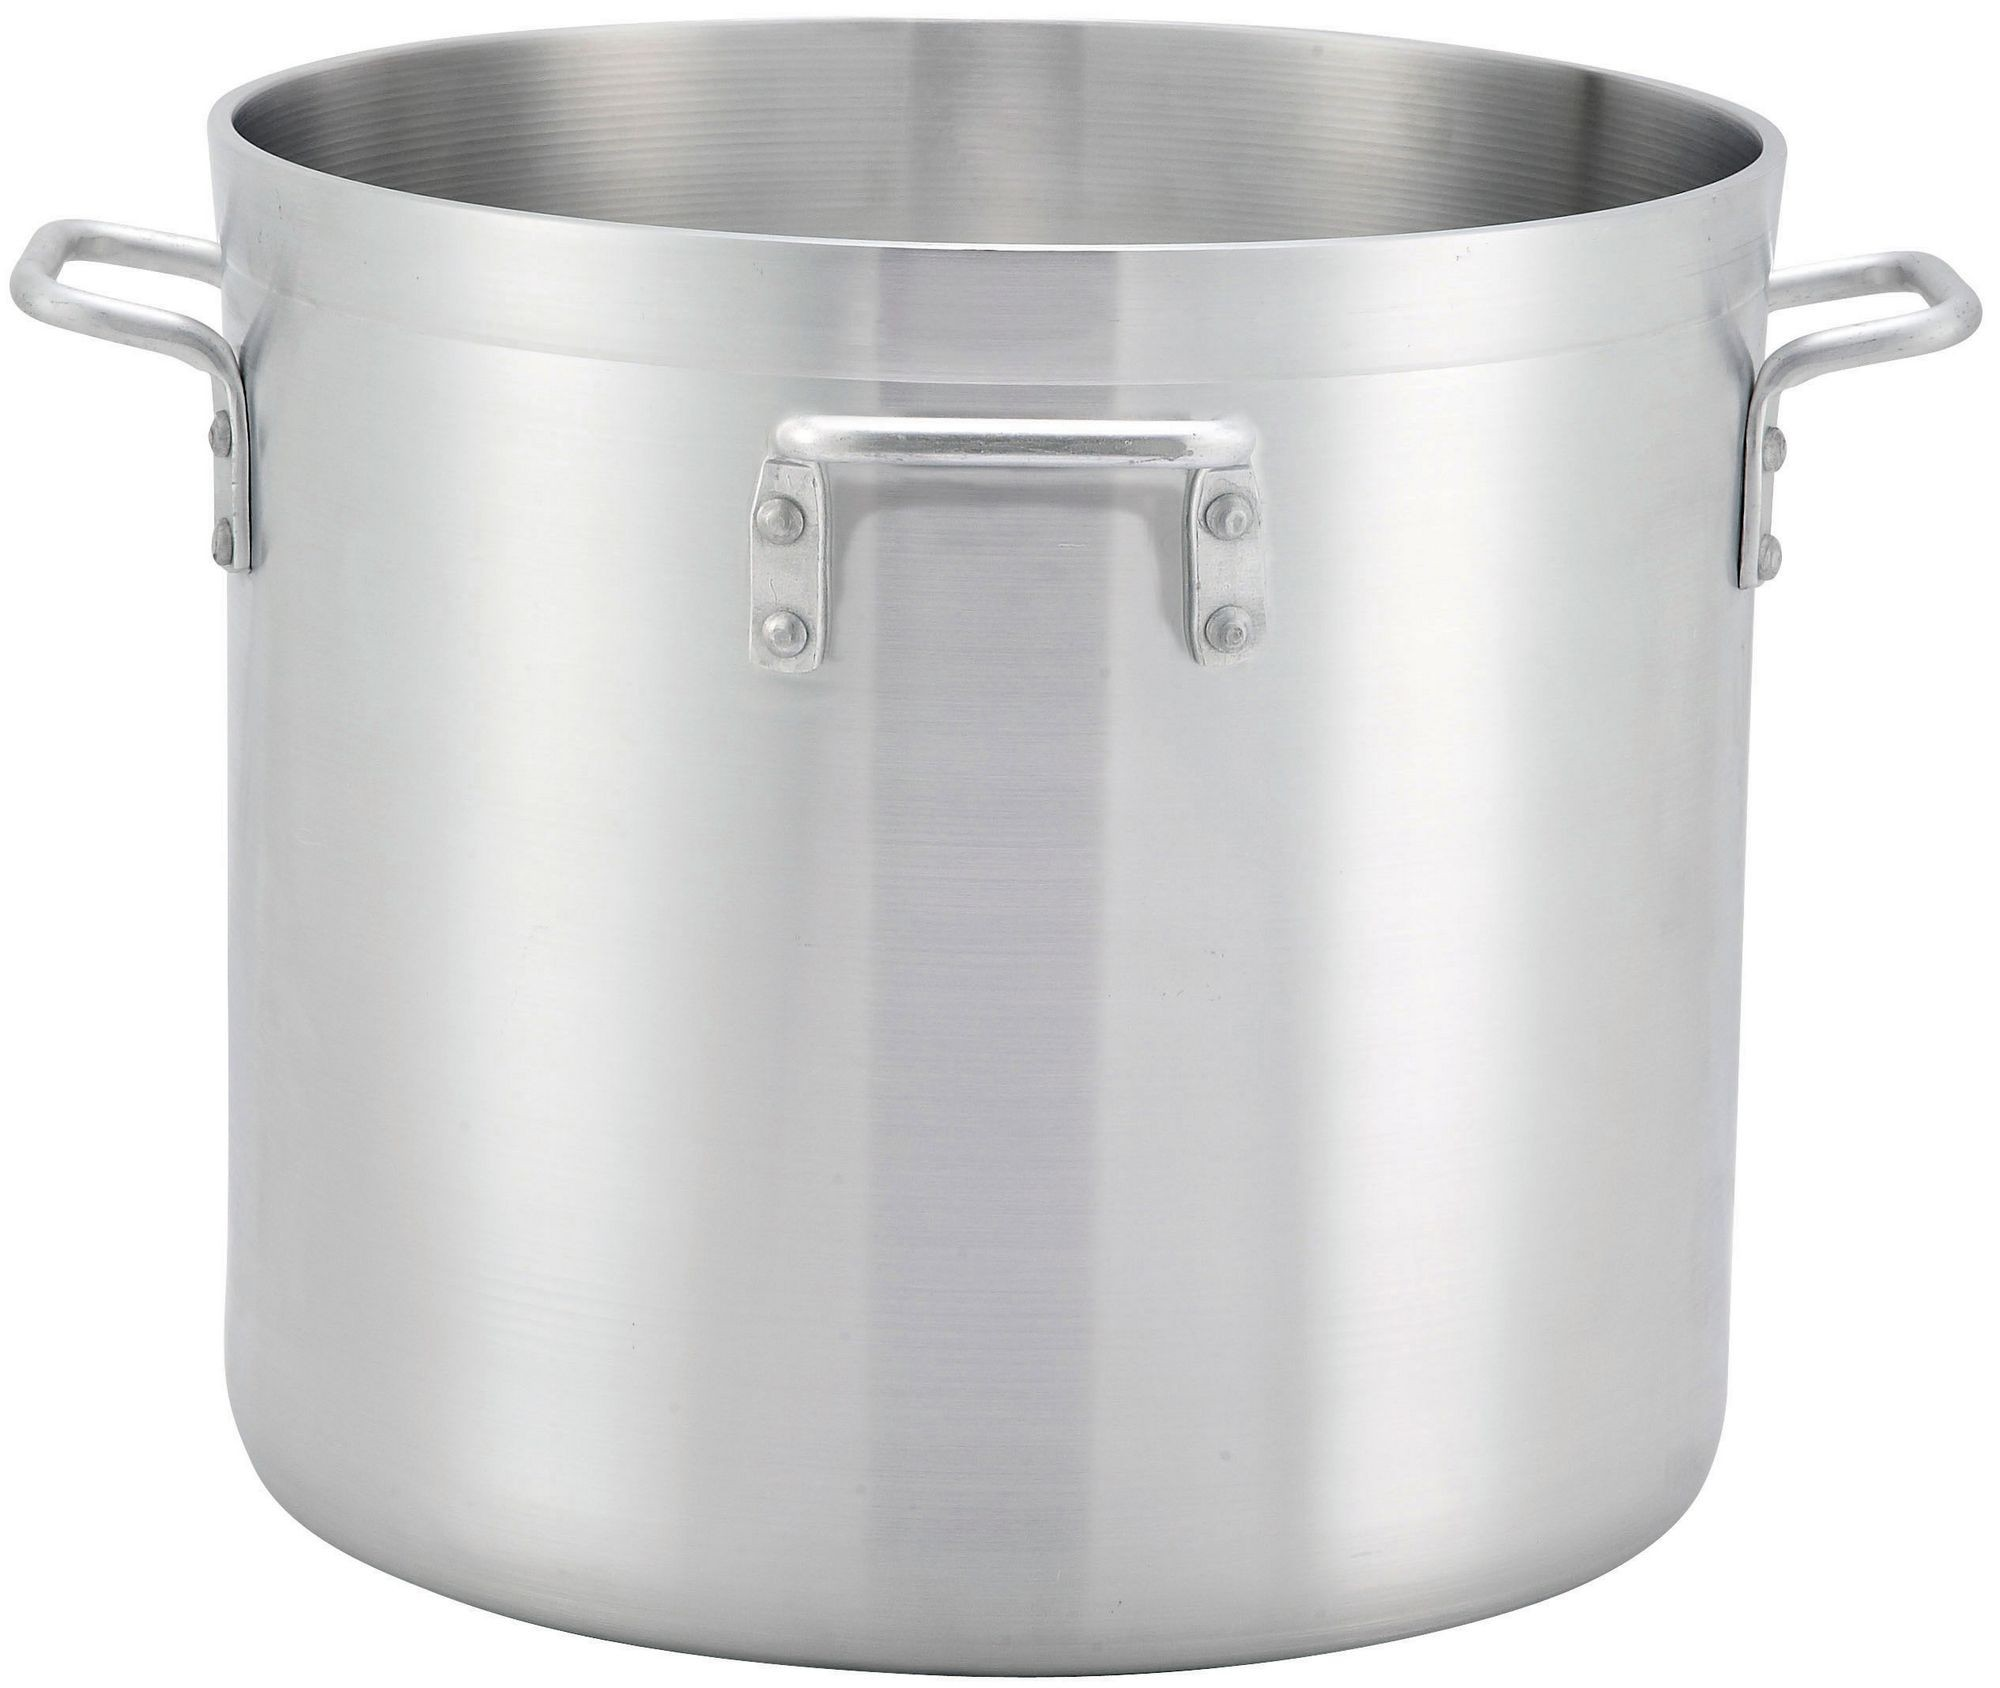 Super Aluminum 120 Qt Stock Pot 6.00 mm